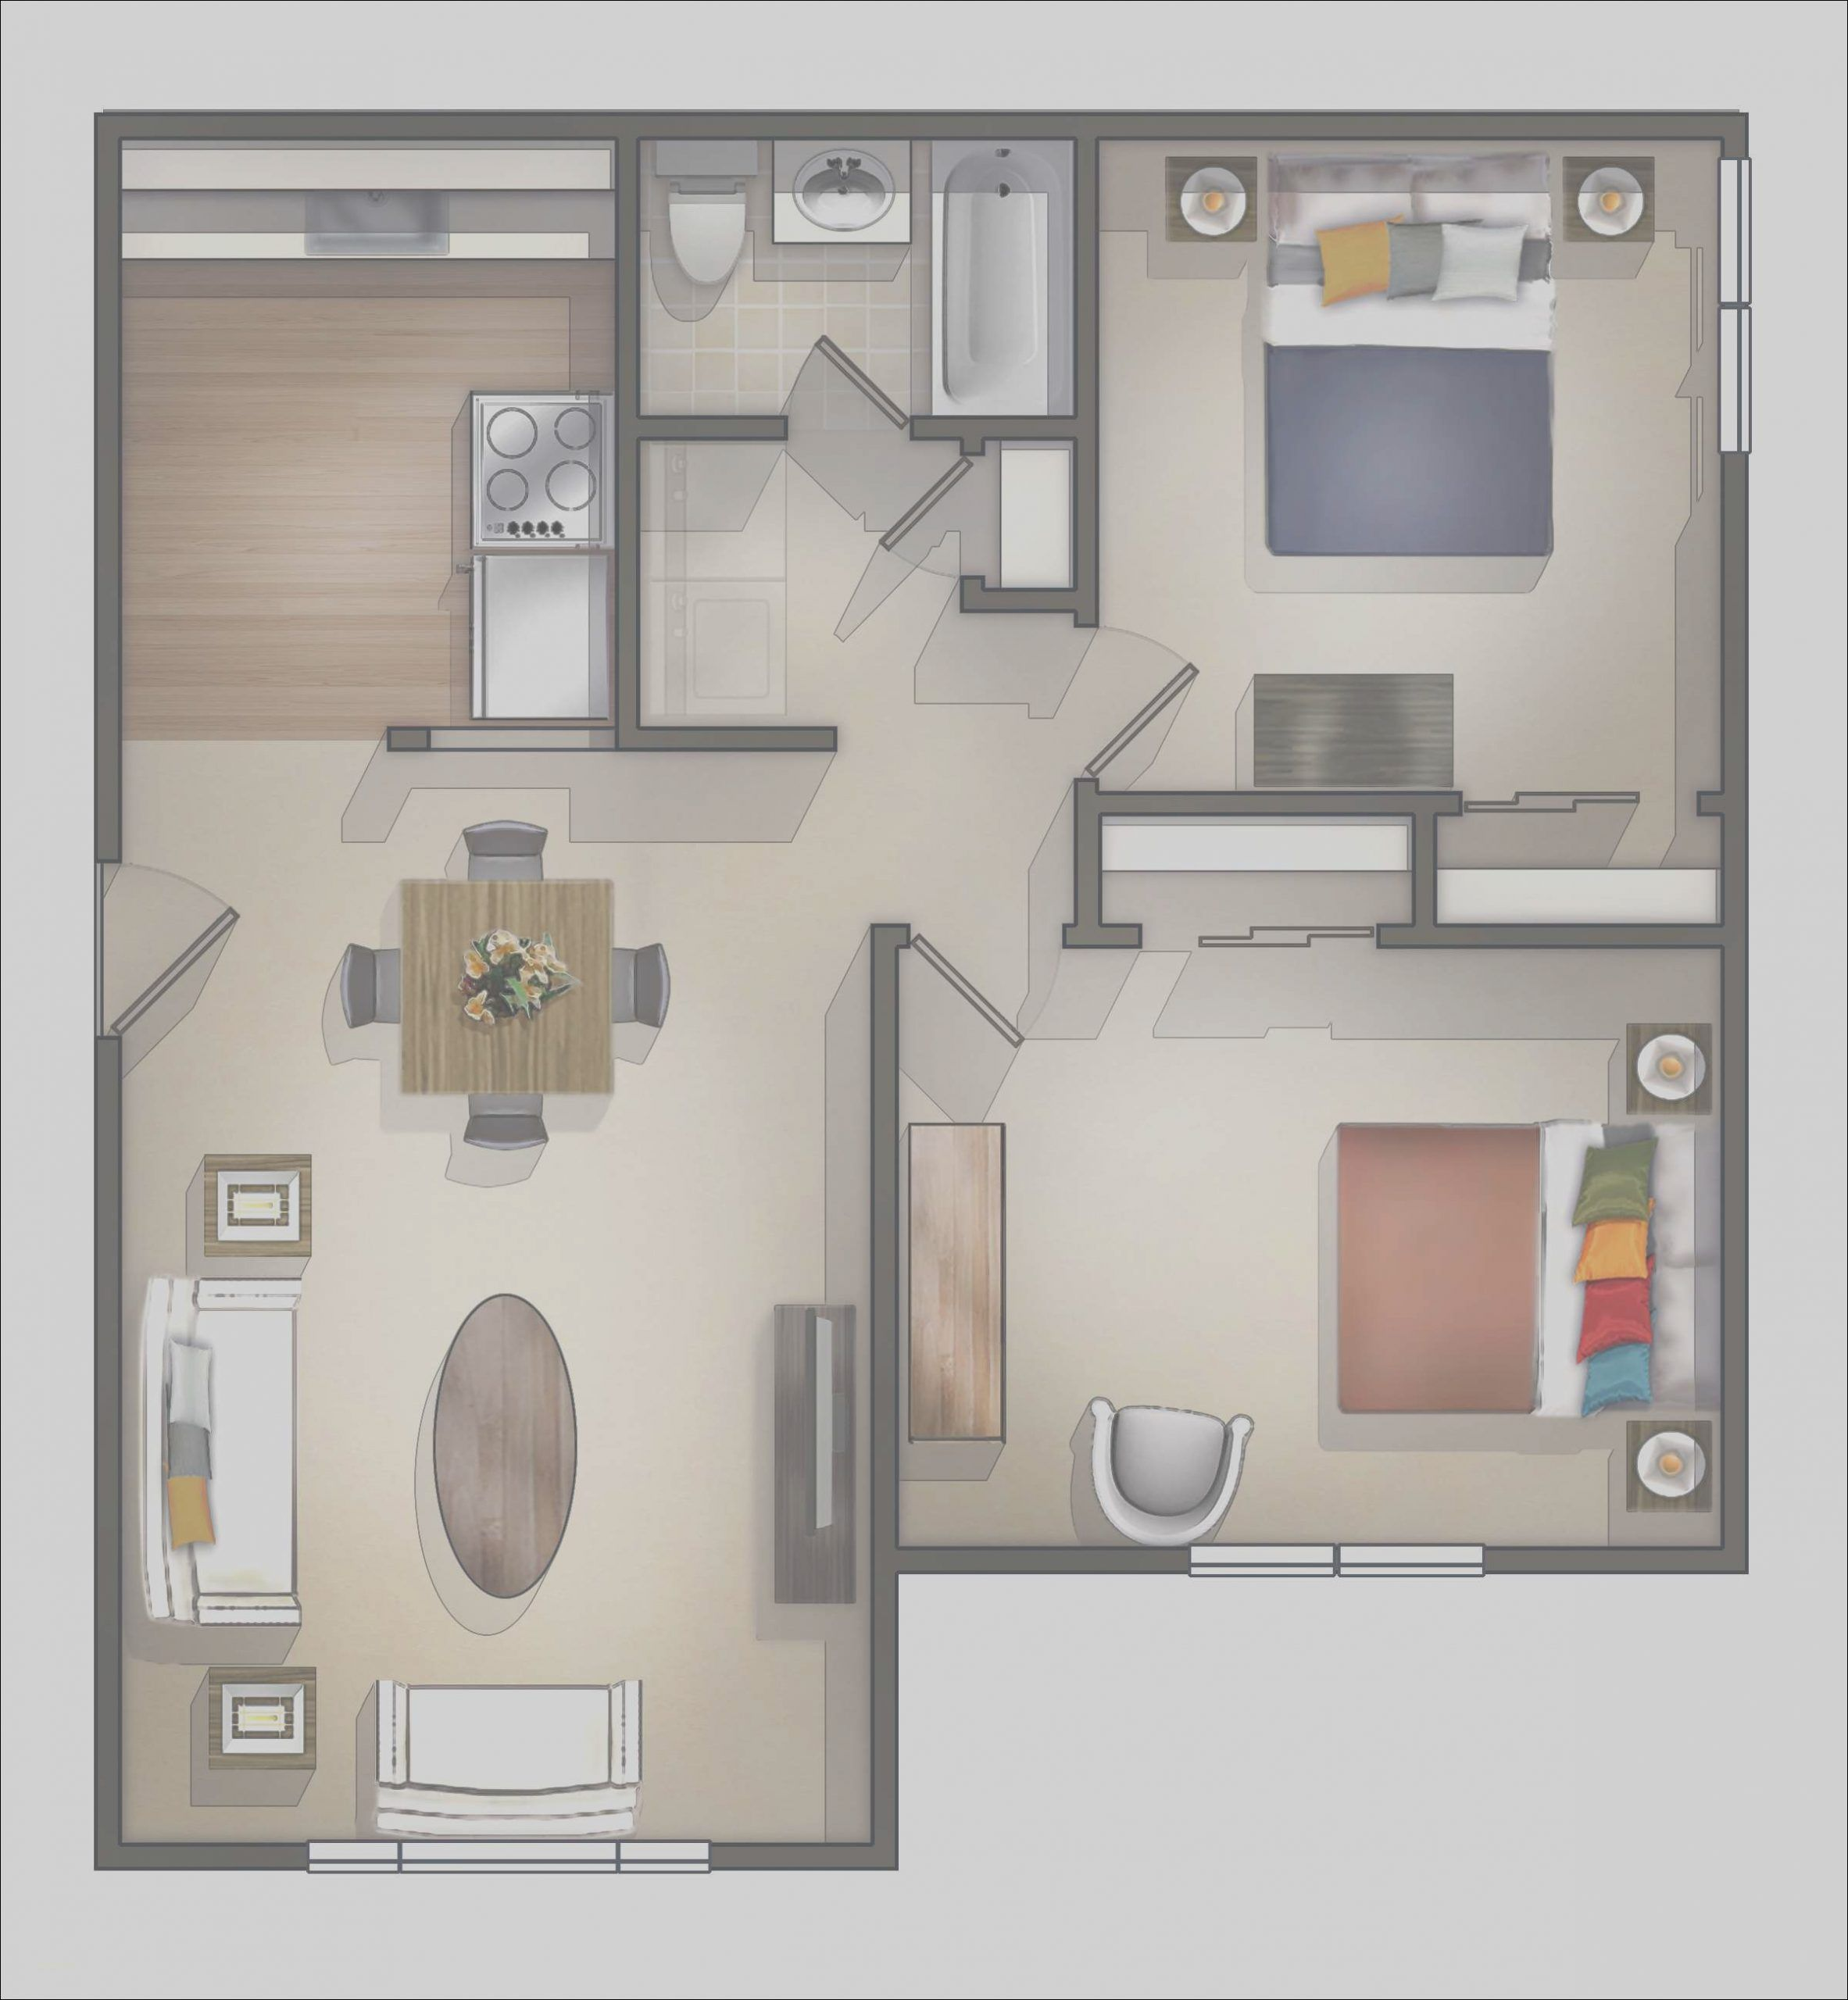 Best Small Studio Apartment Layout Ideas Creative in 2020